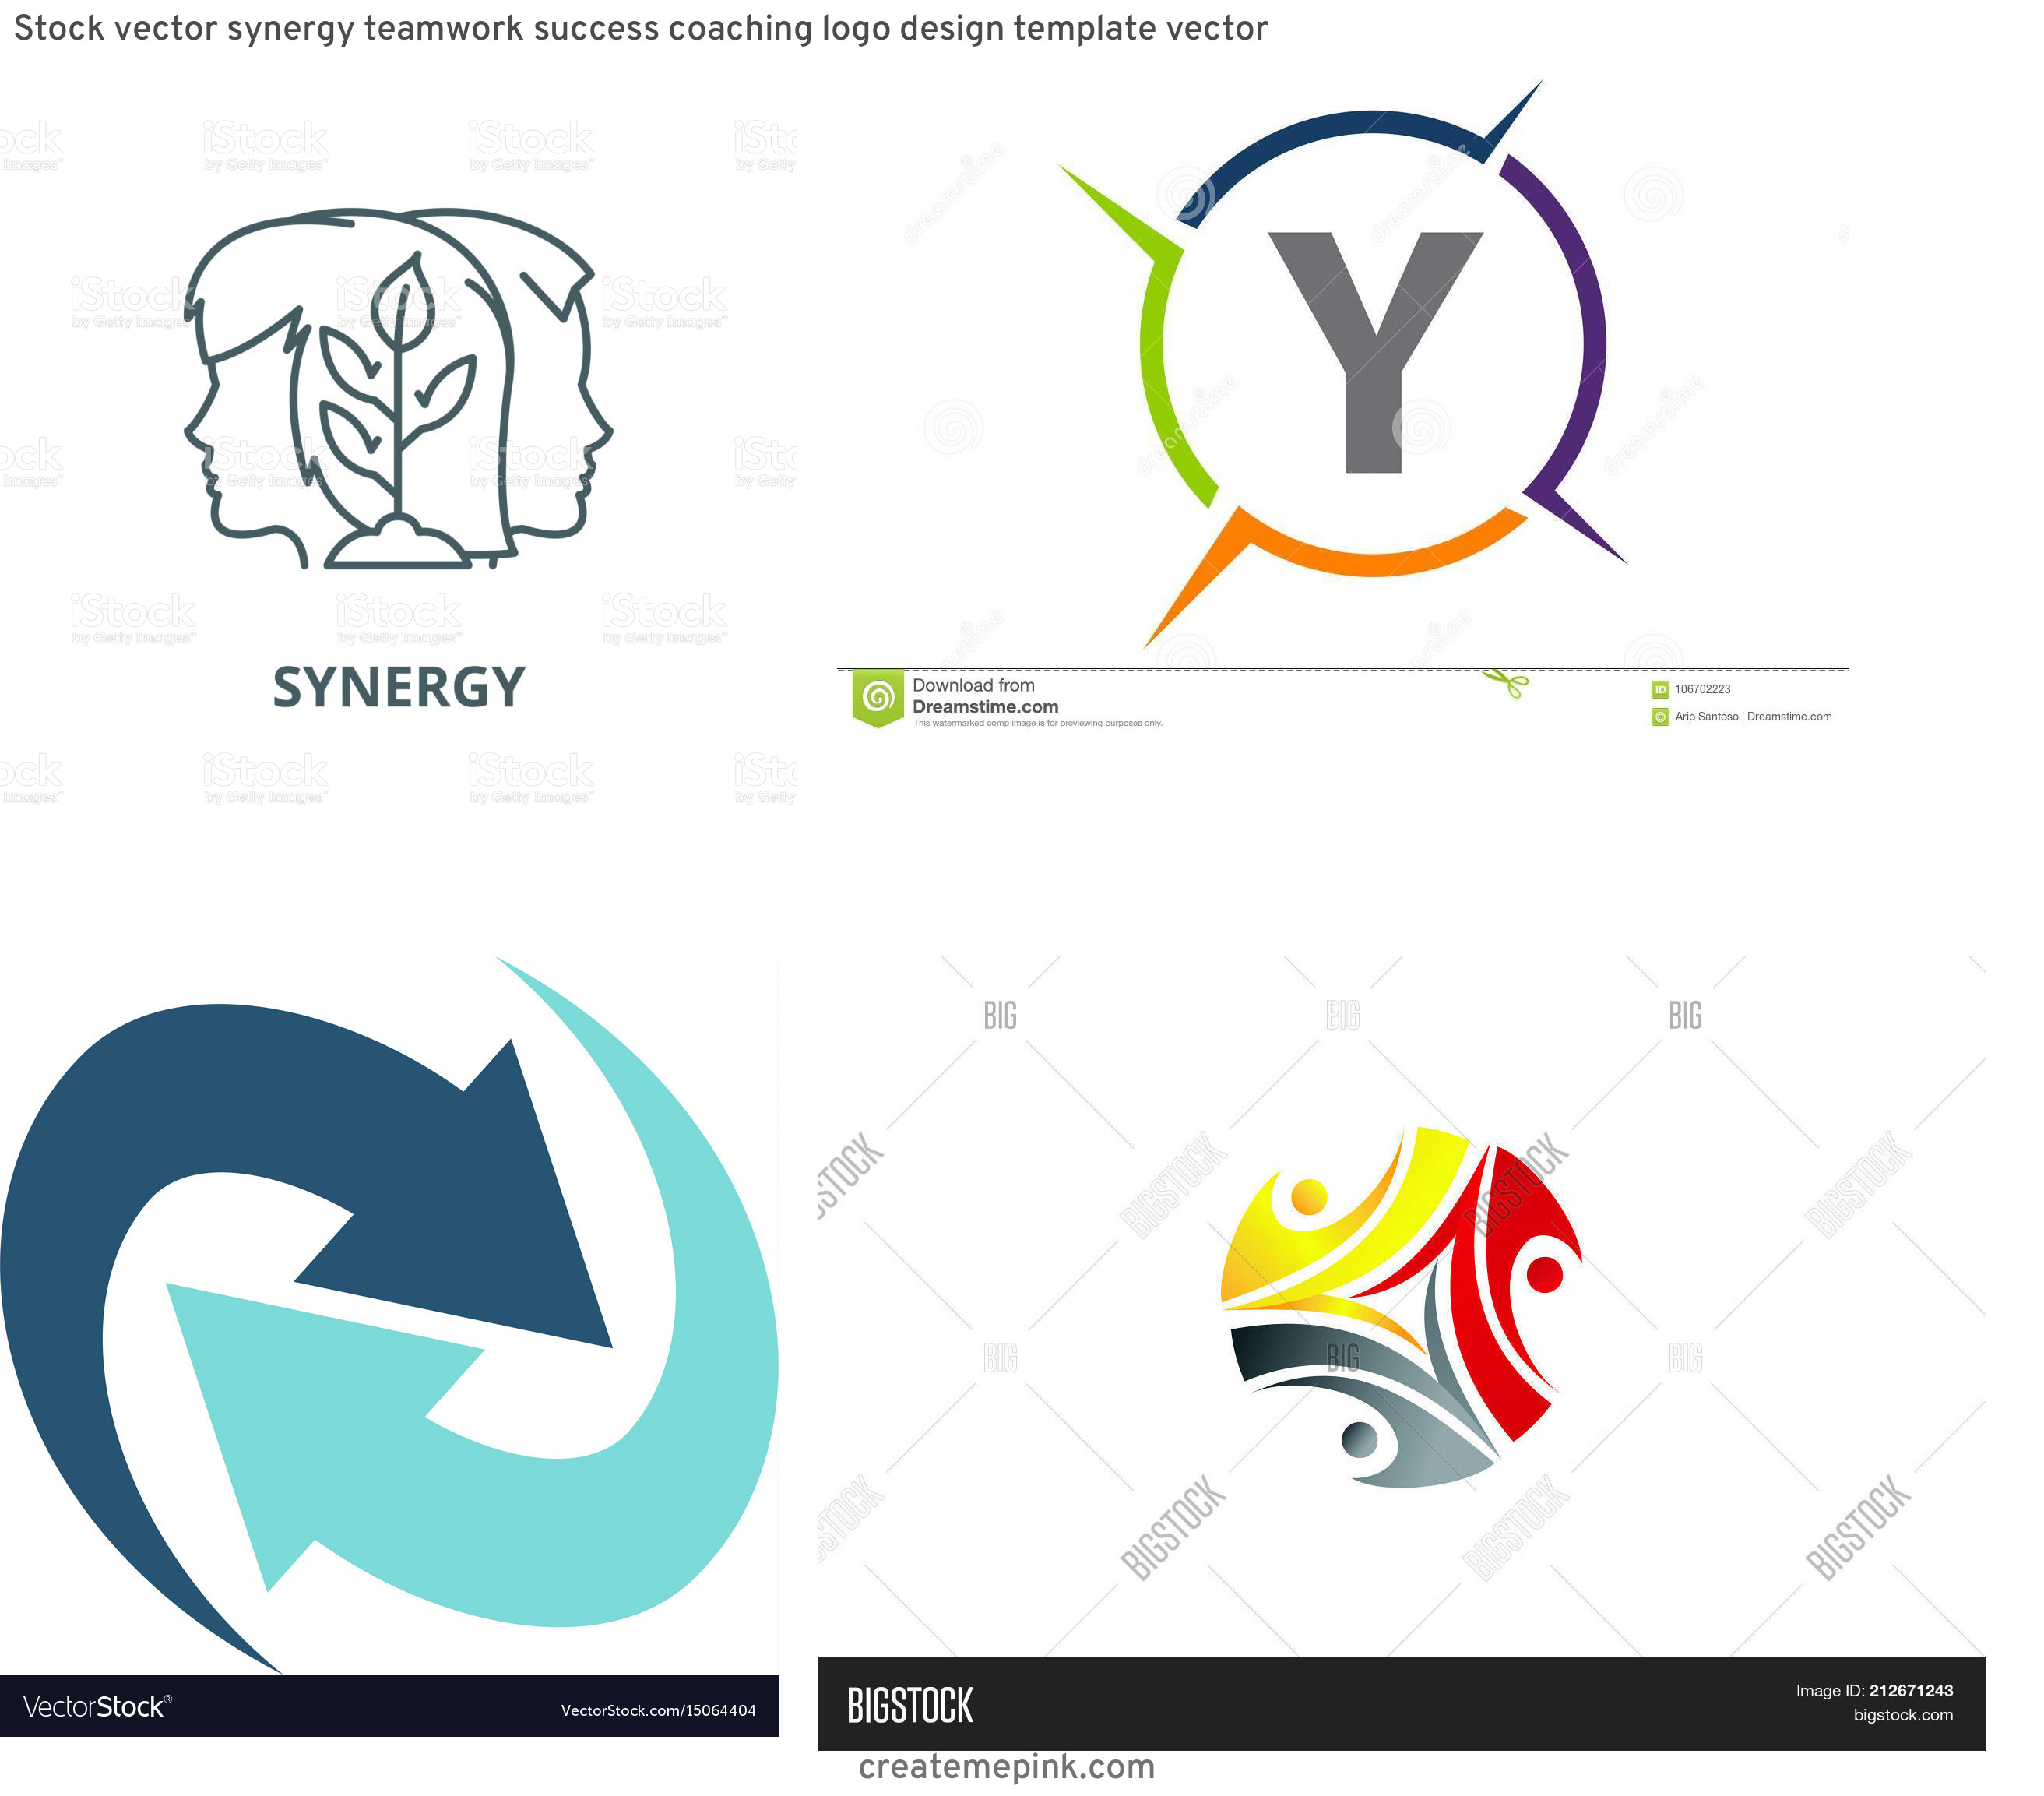 Vector Synergy: Stock Vector Synergy Teamwork Success Coaching Logo Design Template Vector